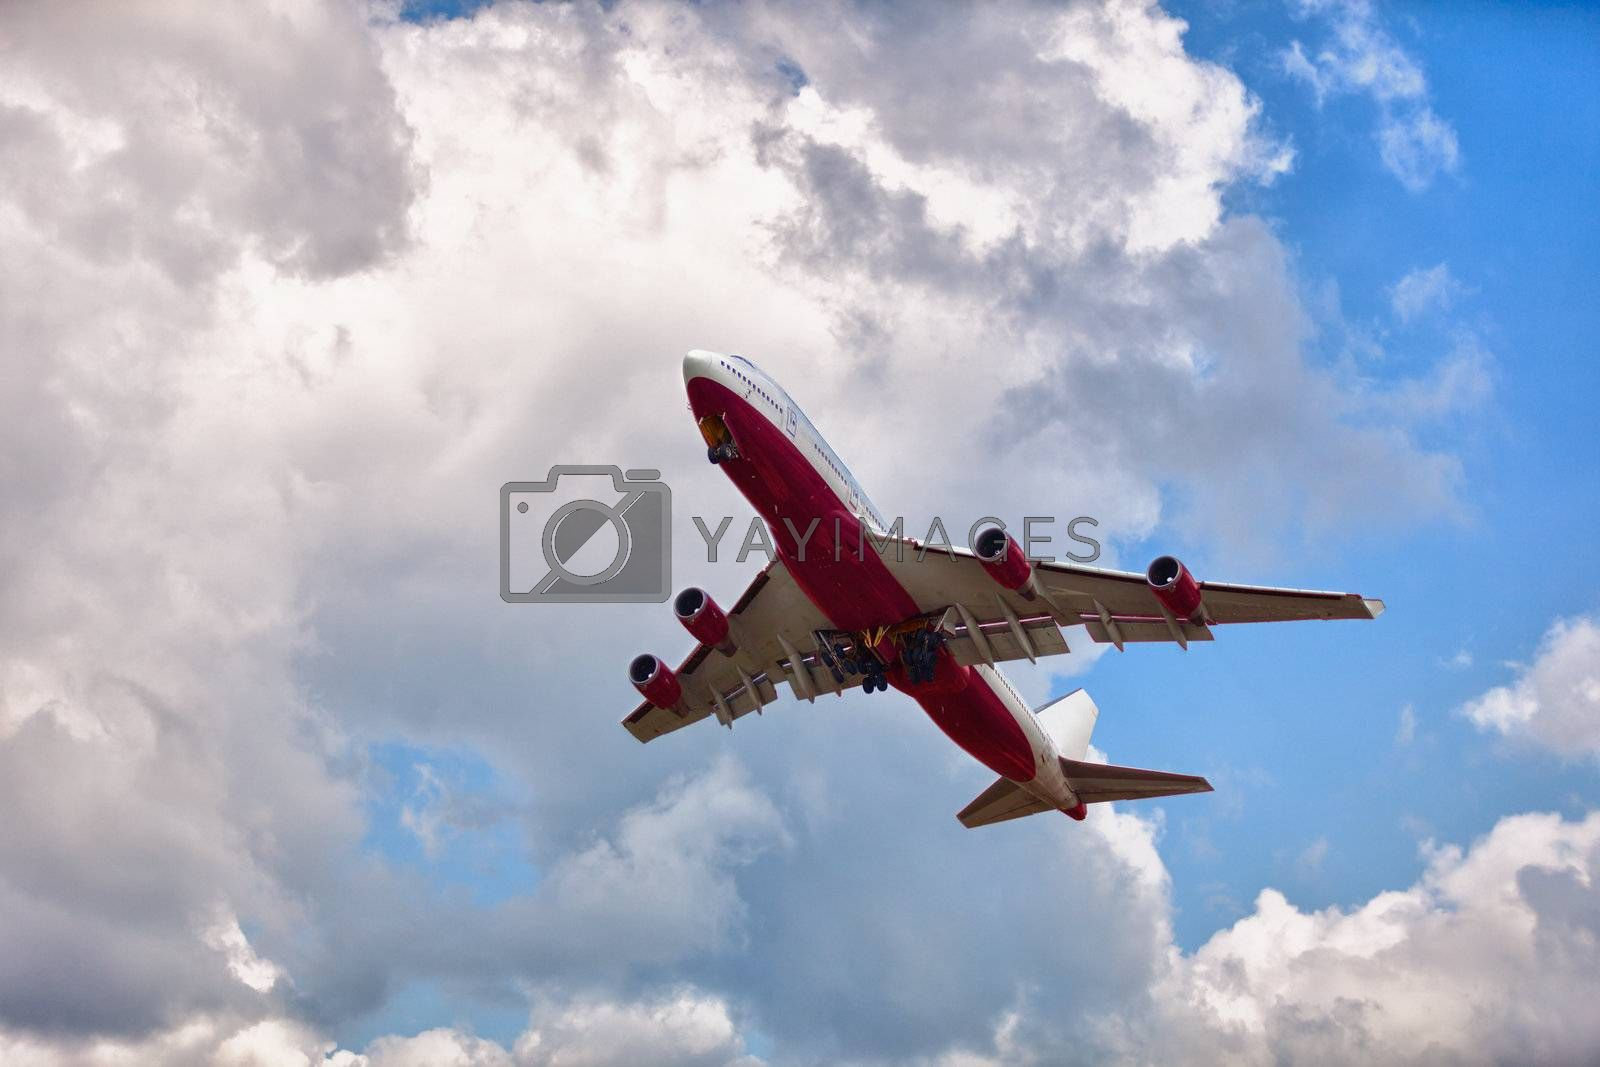 Large passenger aircraft on the sky background